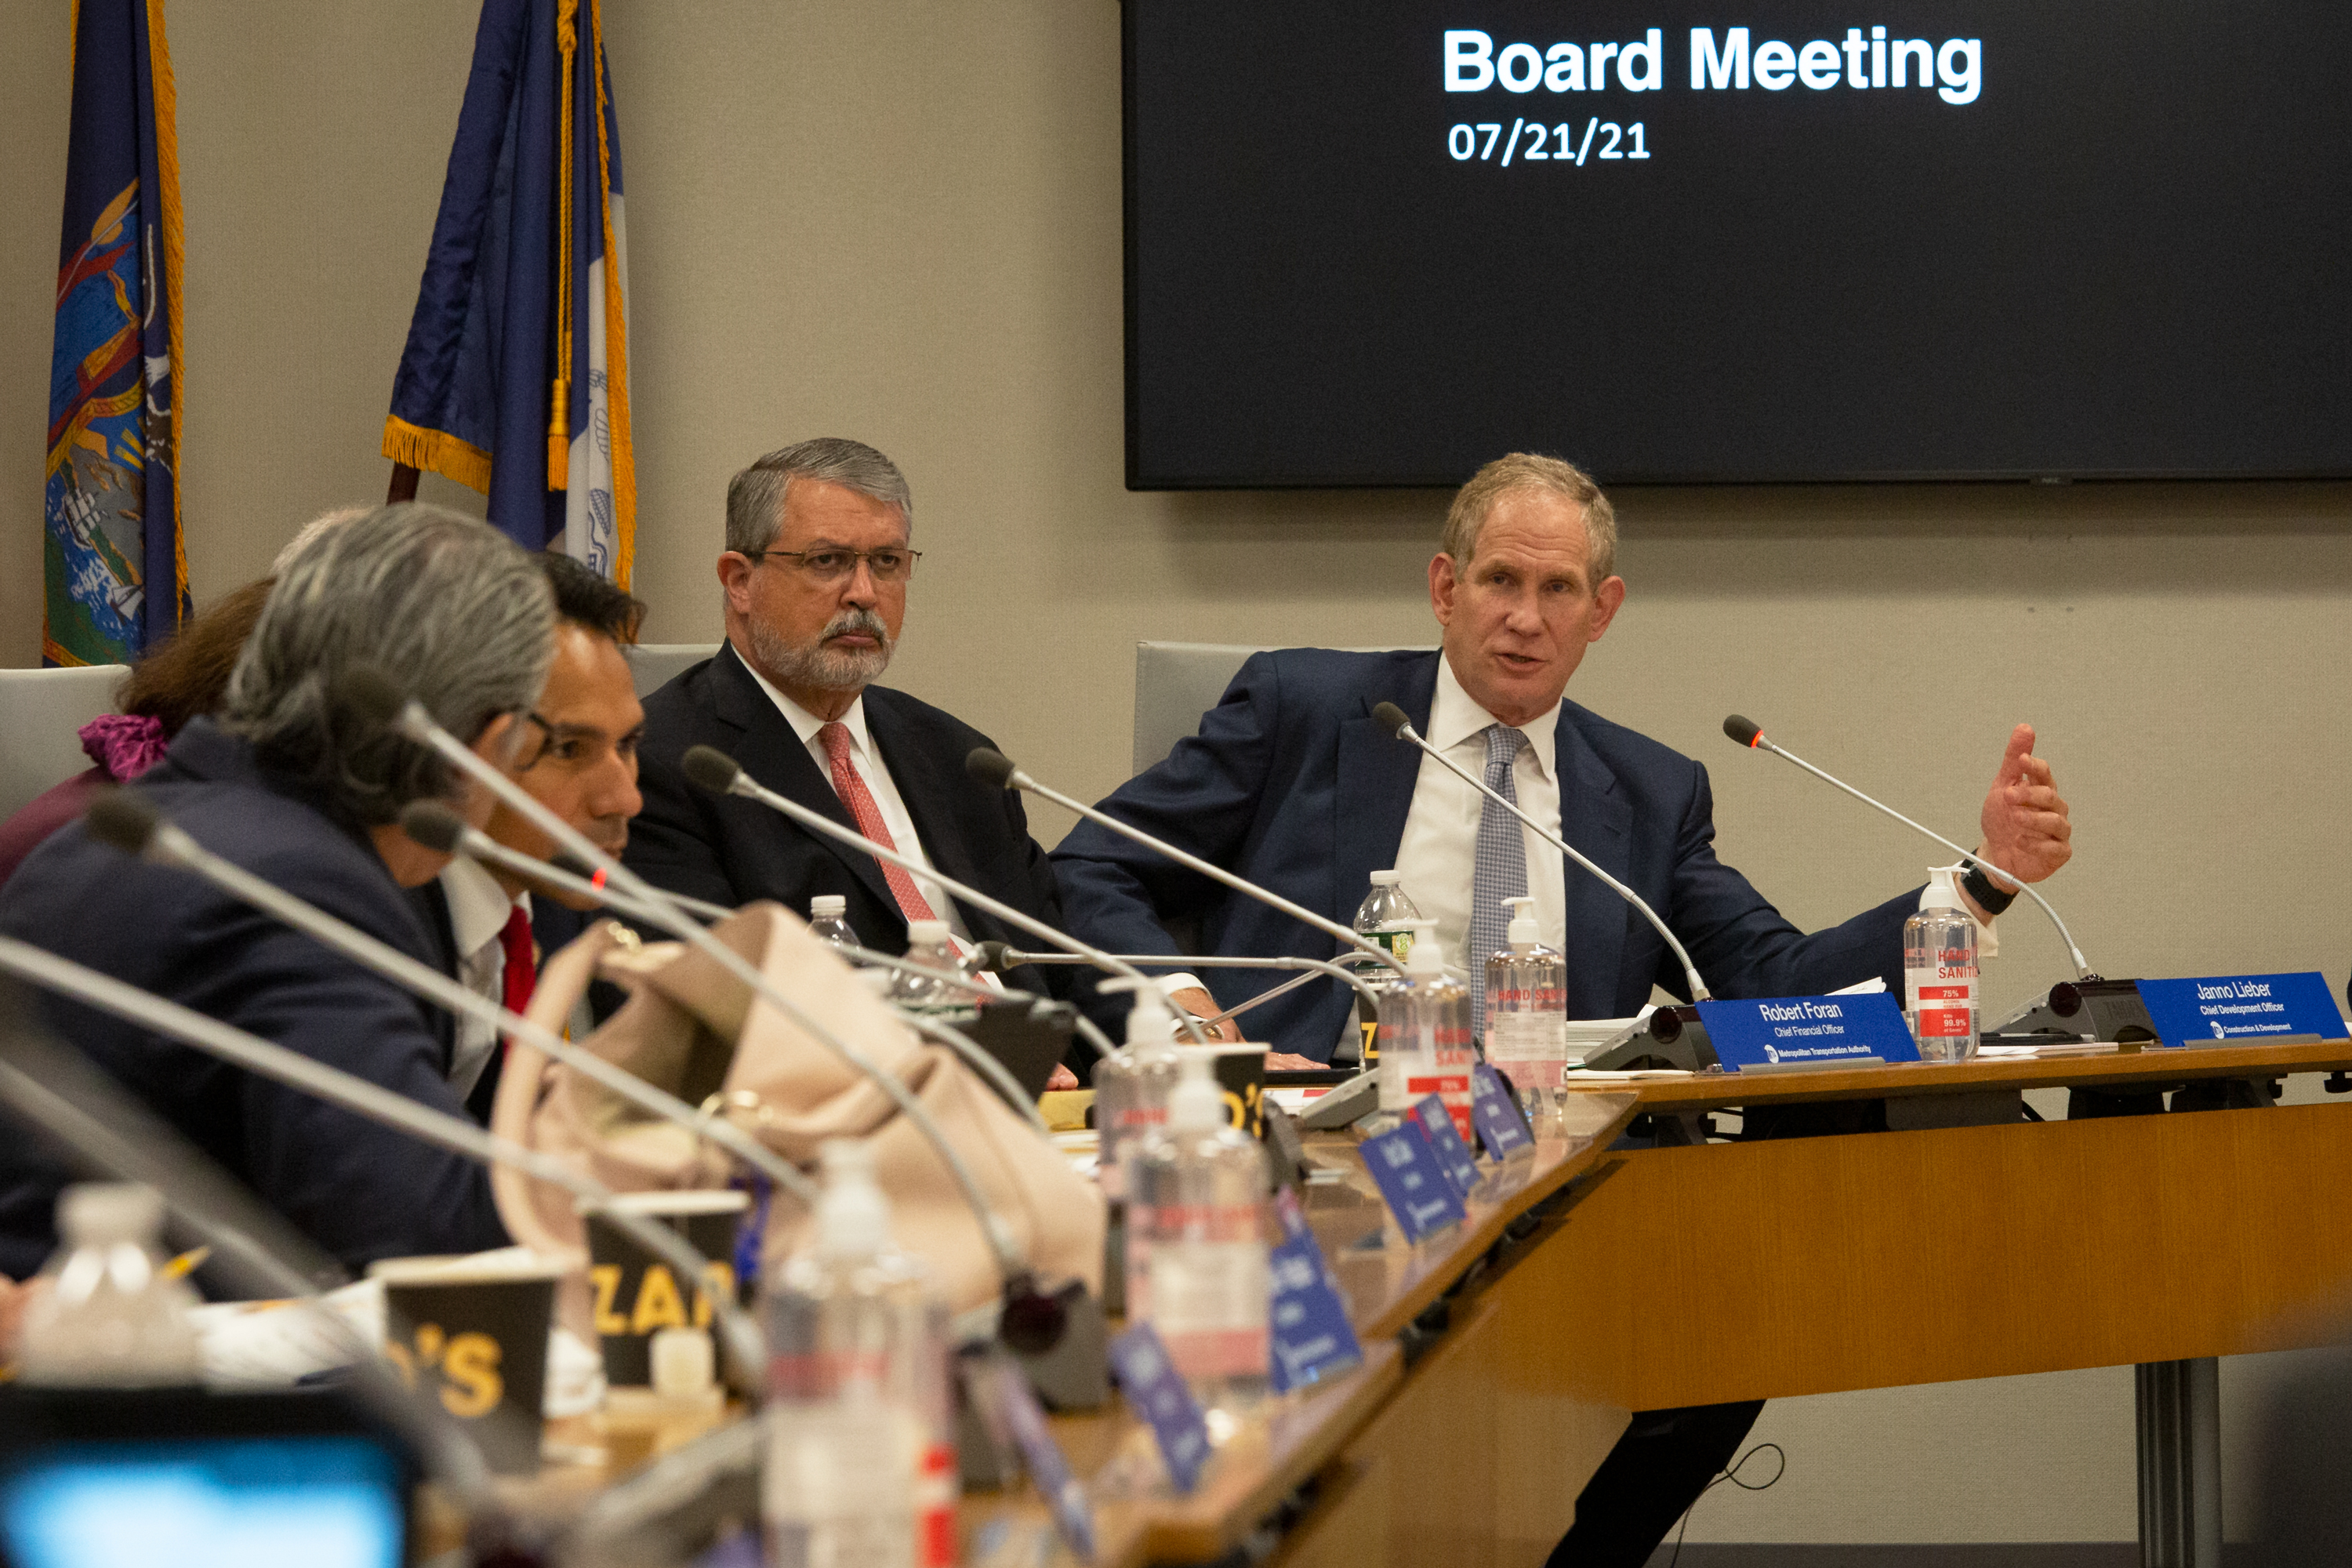 MTA Chief Development Officer Janno Lieber speaks at the agency's monthly board meeting in lower Manhattan, July 21, 2021.